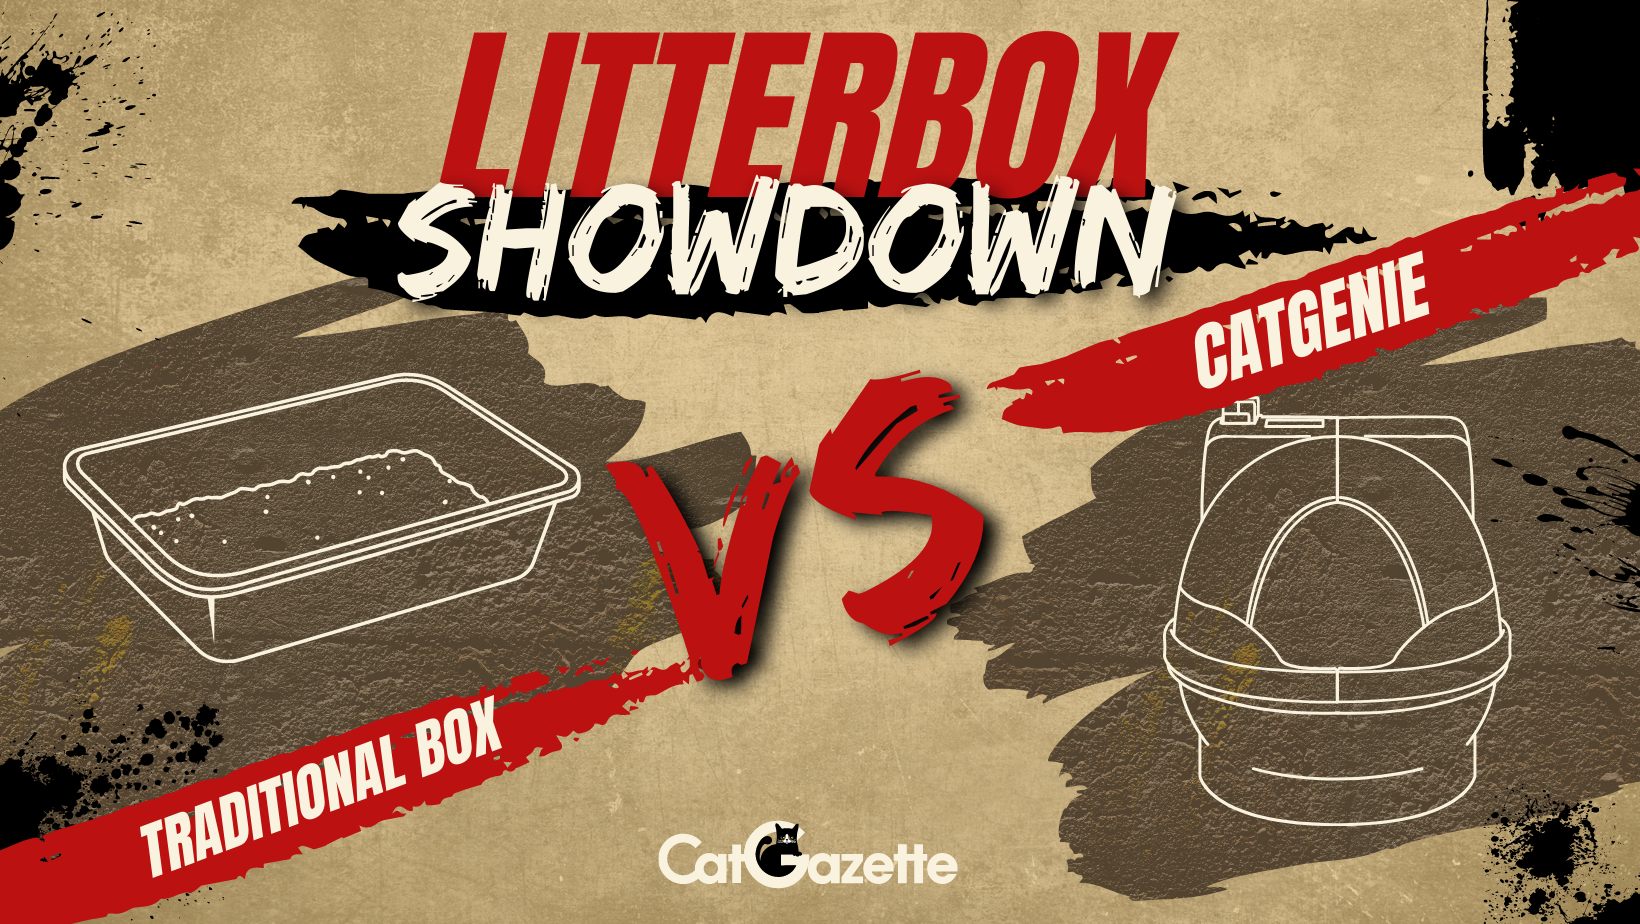 Poster image featuring a versus drawing of a traditional cat litter box and a drawing of the CatGenie.